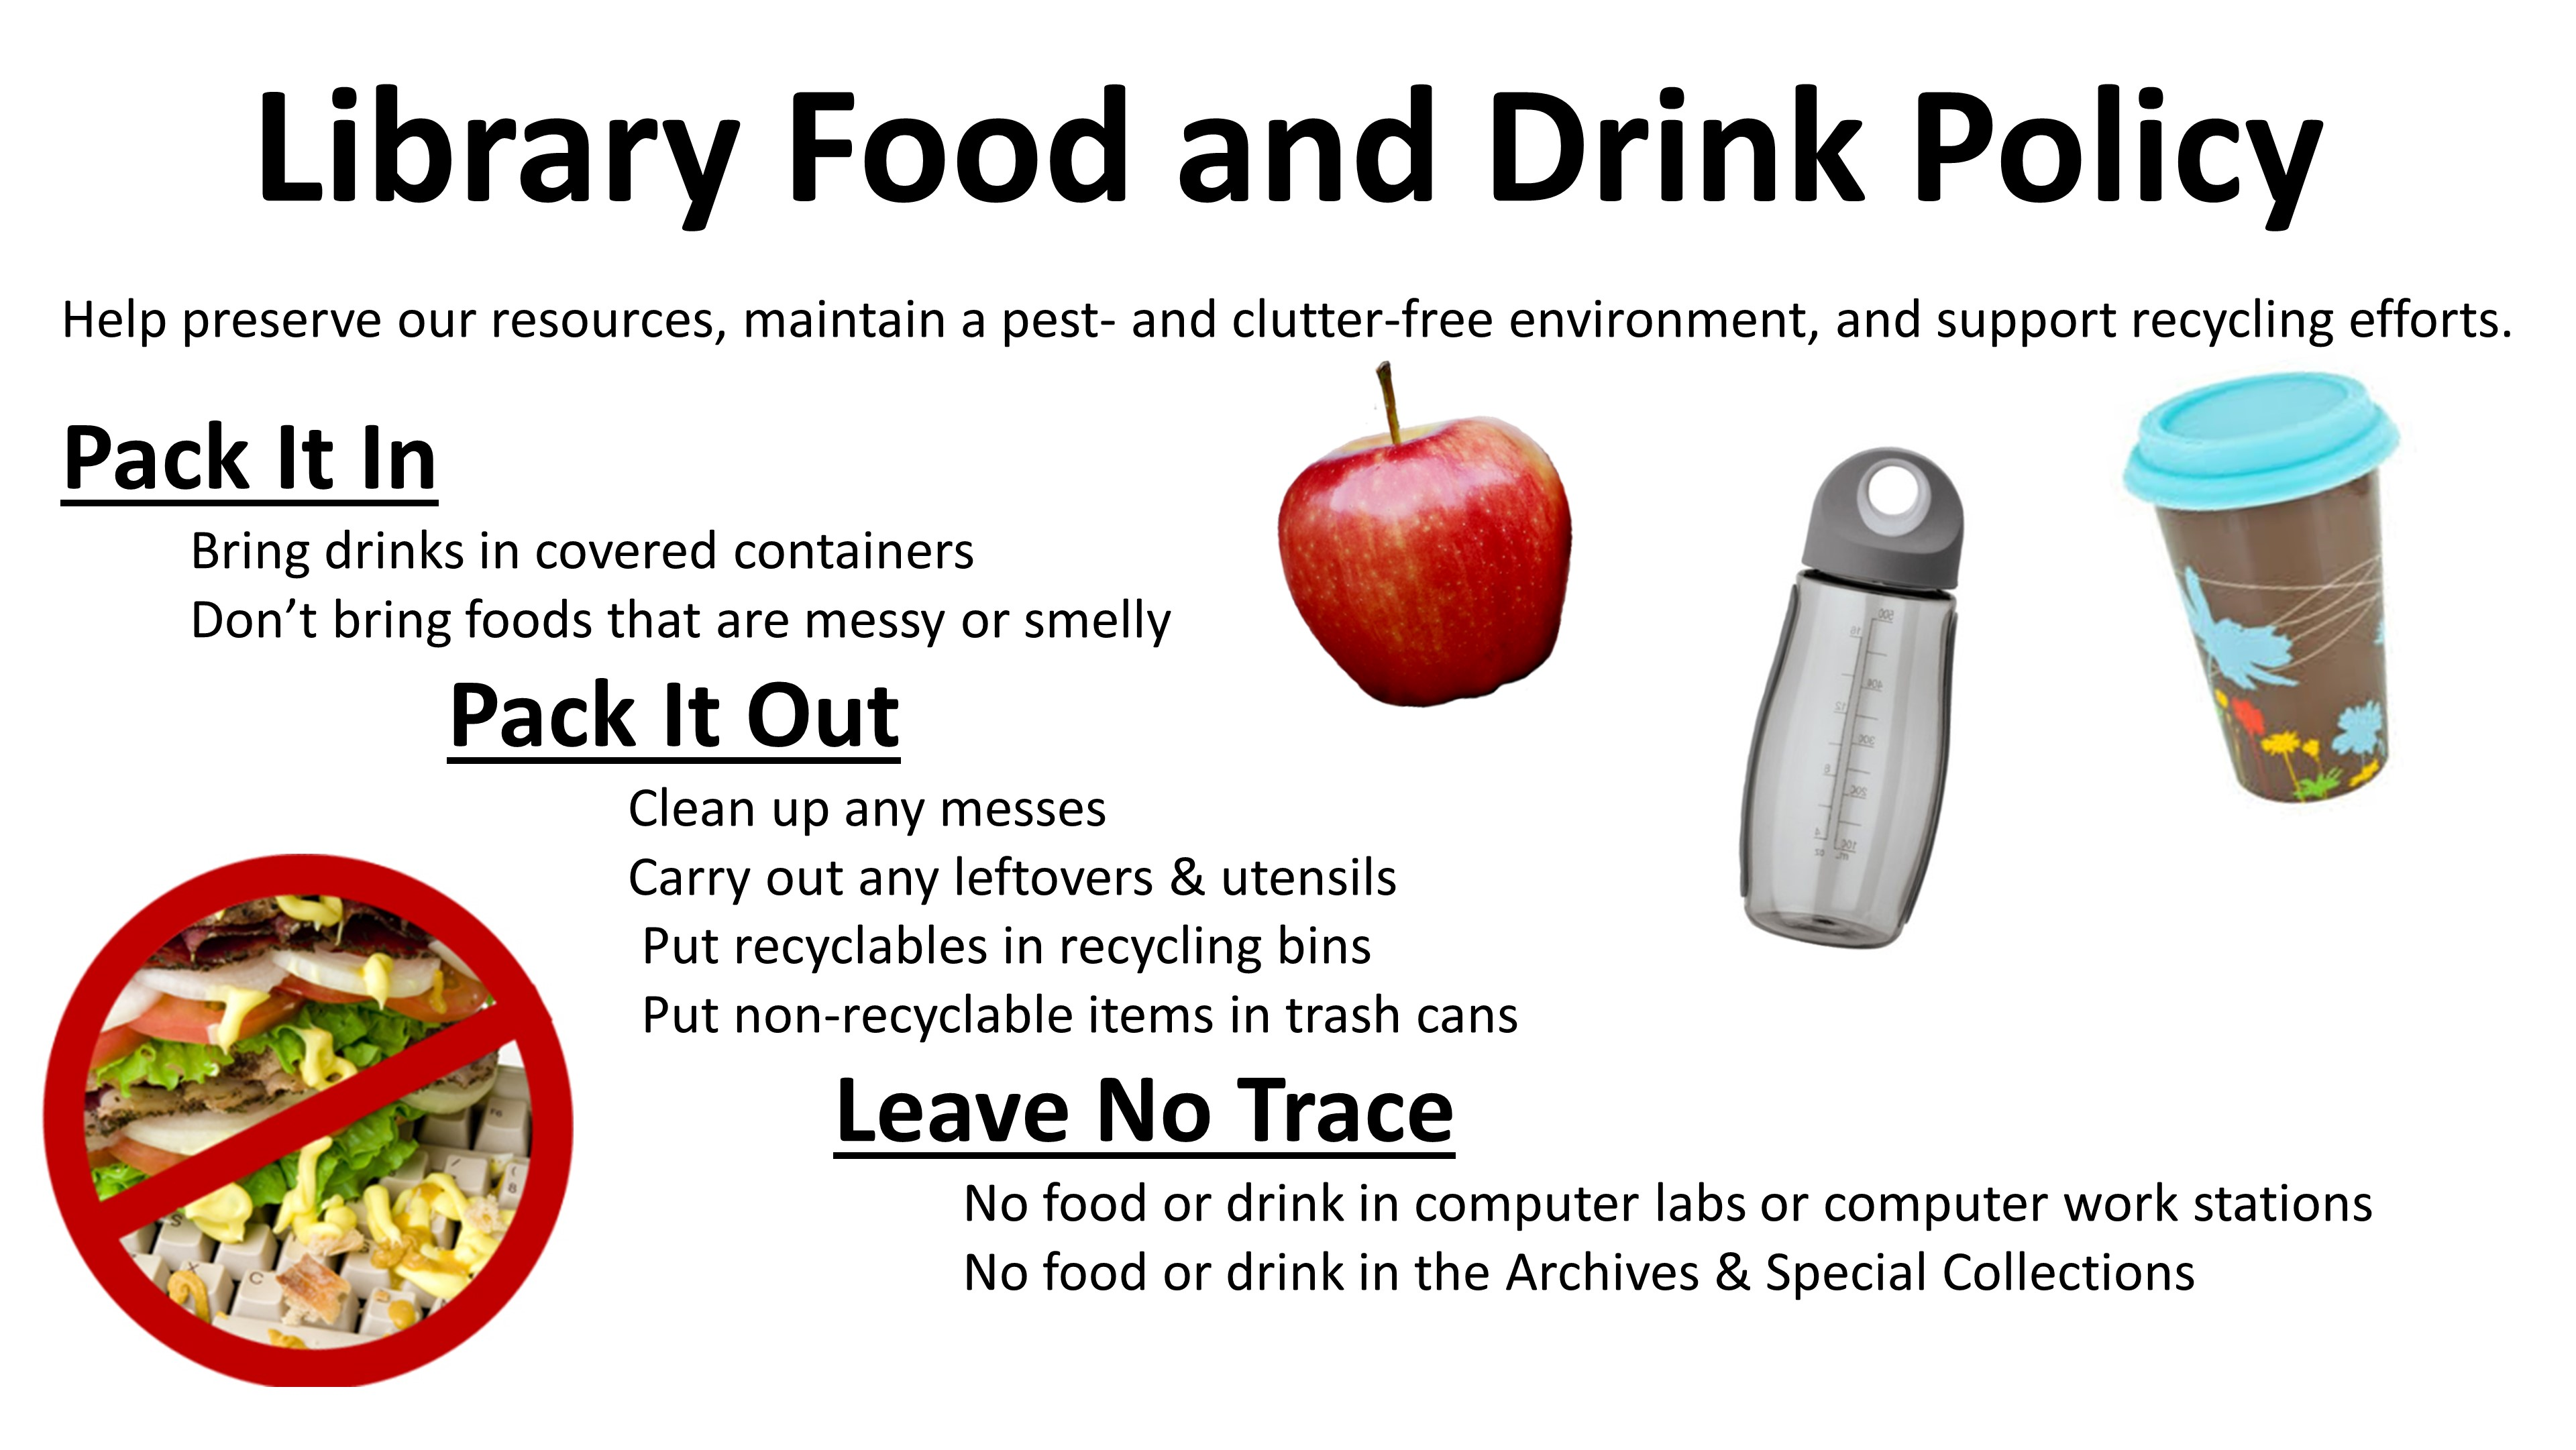 food and drink - earlham libraries policies - earlham libraries home